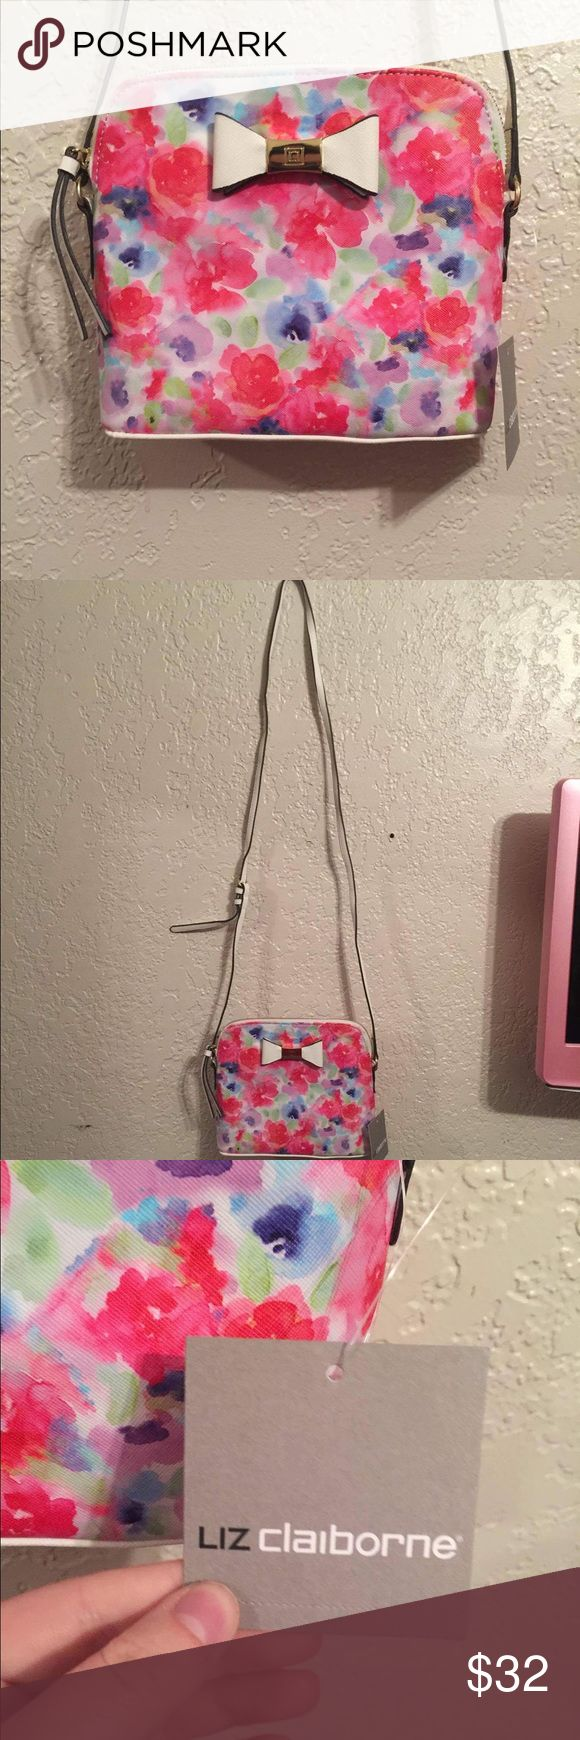 NWT Liz Claiborne crossbody Monica purse Brand new with tags! Very pretty for any season. Price is firm. It was originally $40 and it's a beautiful purse! Matches just about everything. Liz Claiborne Bags Crossbody Bags